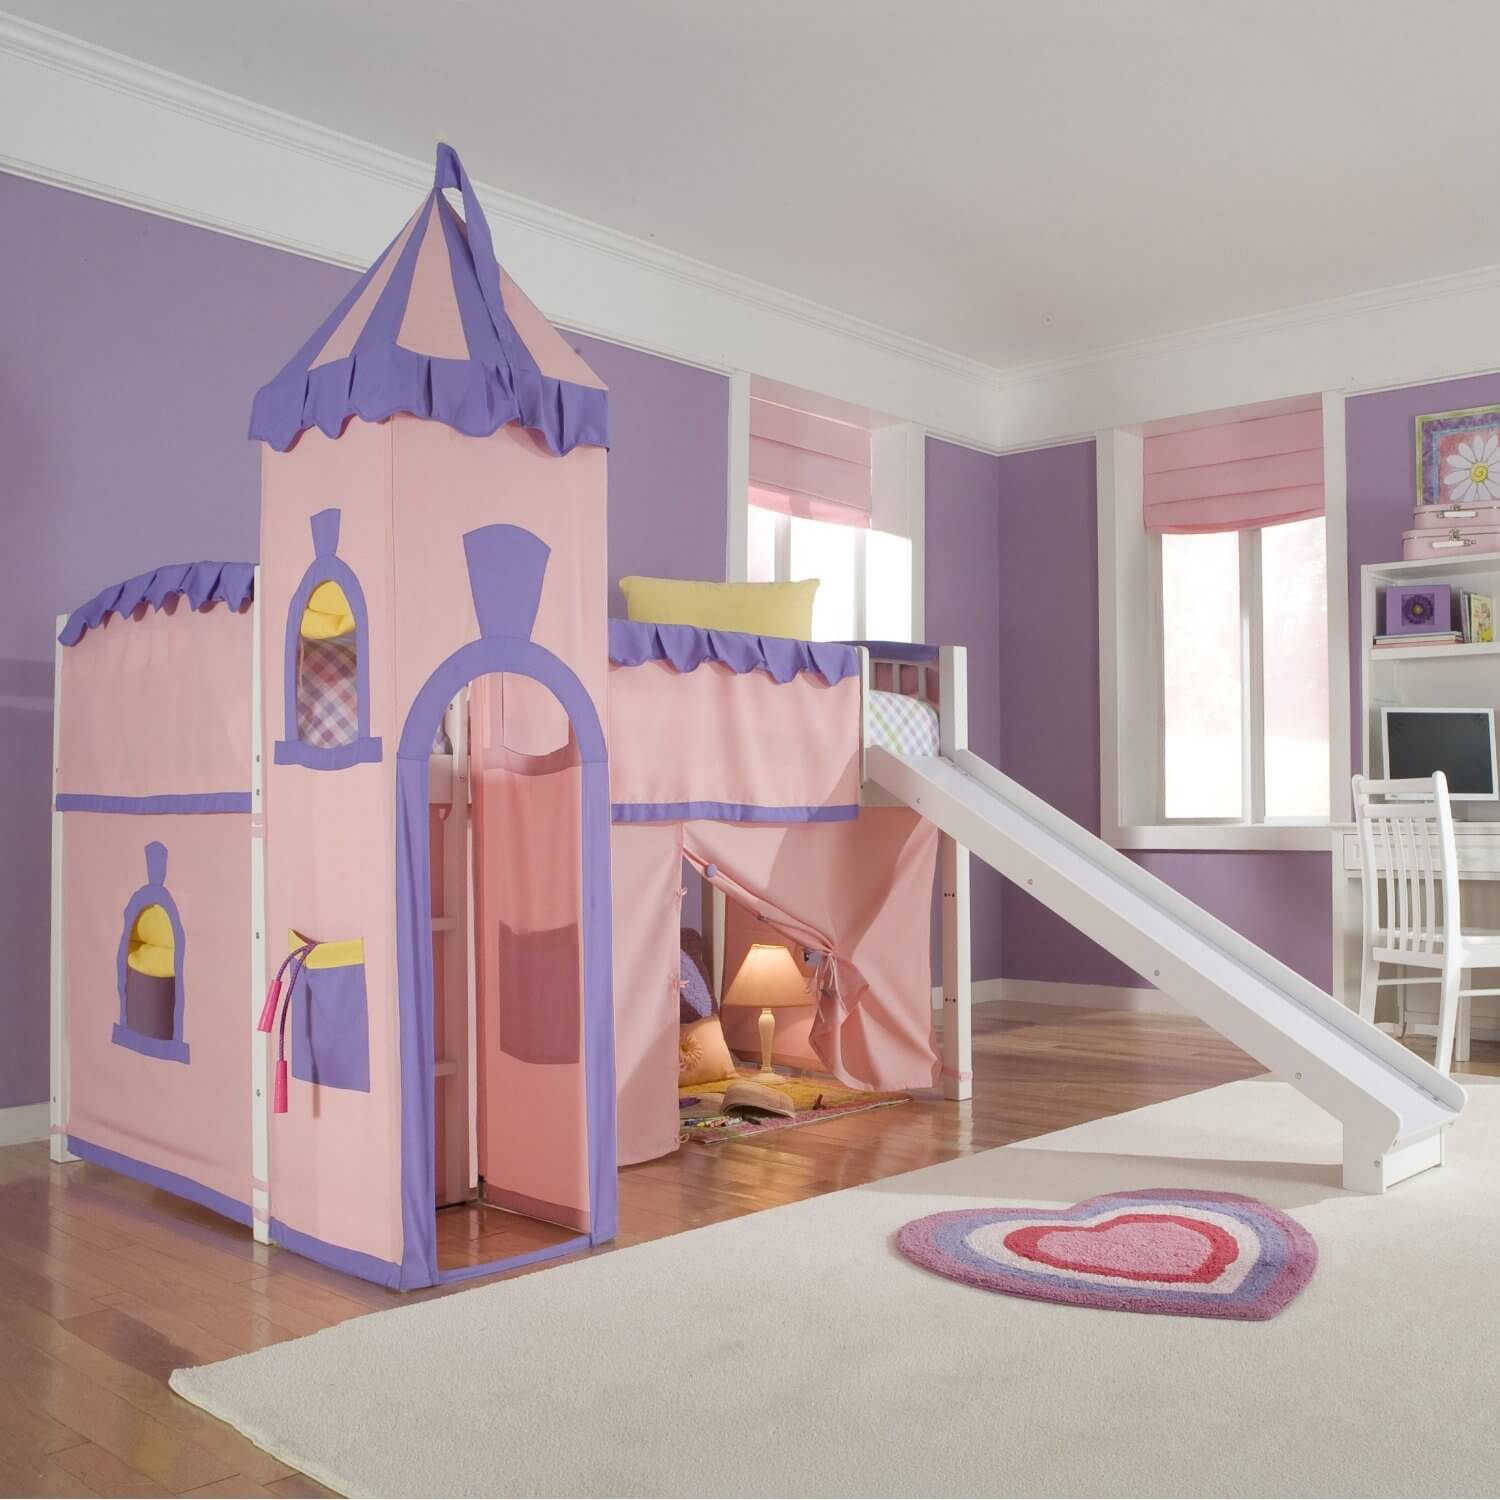 Bunk beds for girls with slide and desk - Pink And Purple Princess Castle Loft Bed With Slide